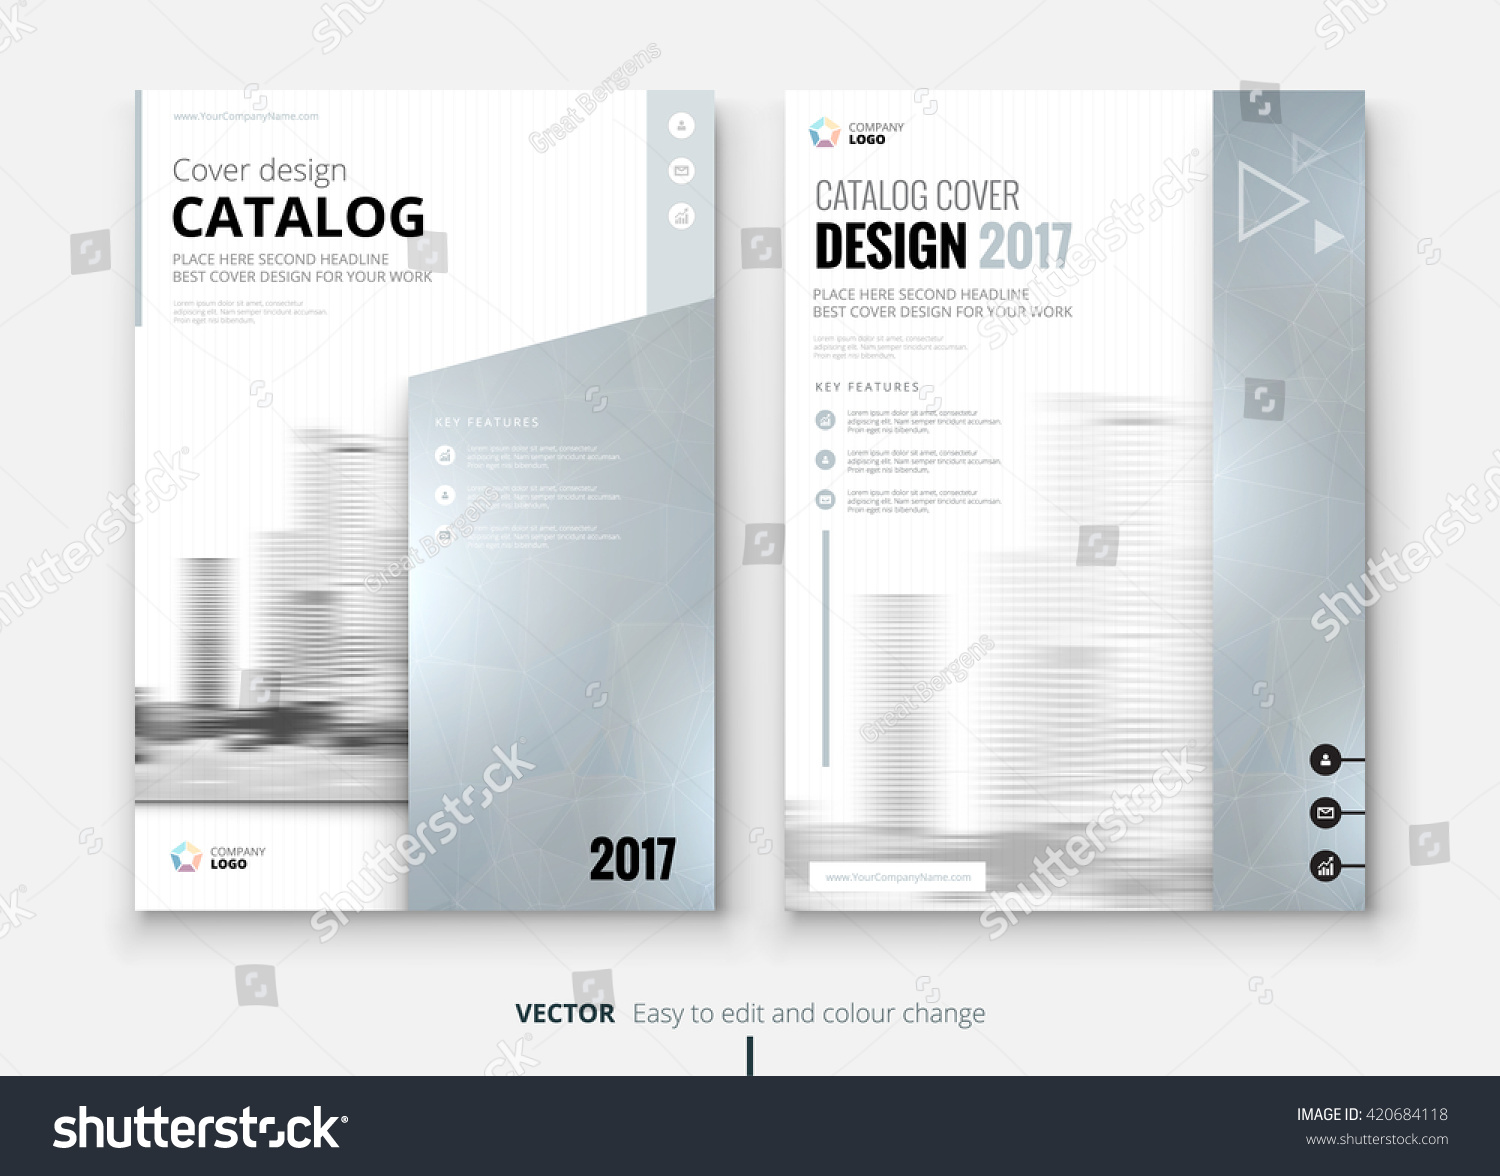 silver brochure catalog design template layout stock vector 420684118 shutterstock. Black Bedroom Furniture Sets. Home Design Ideas